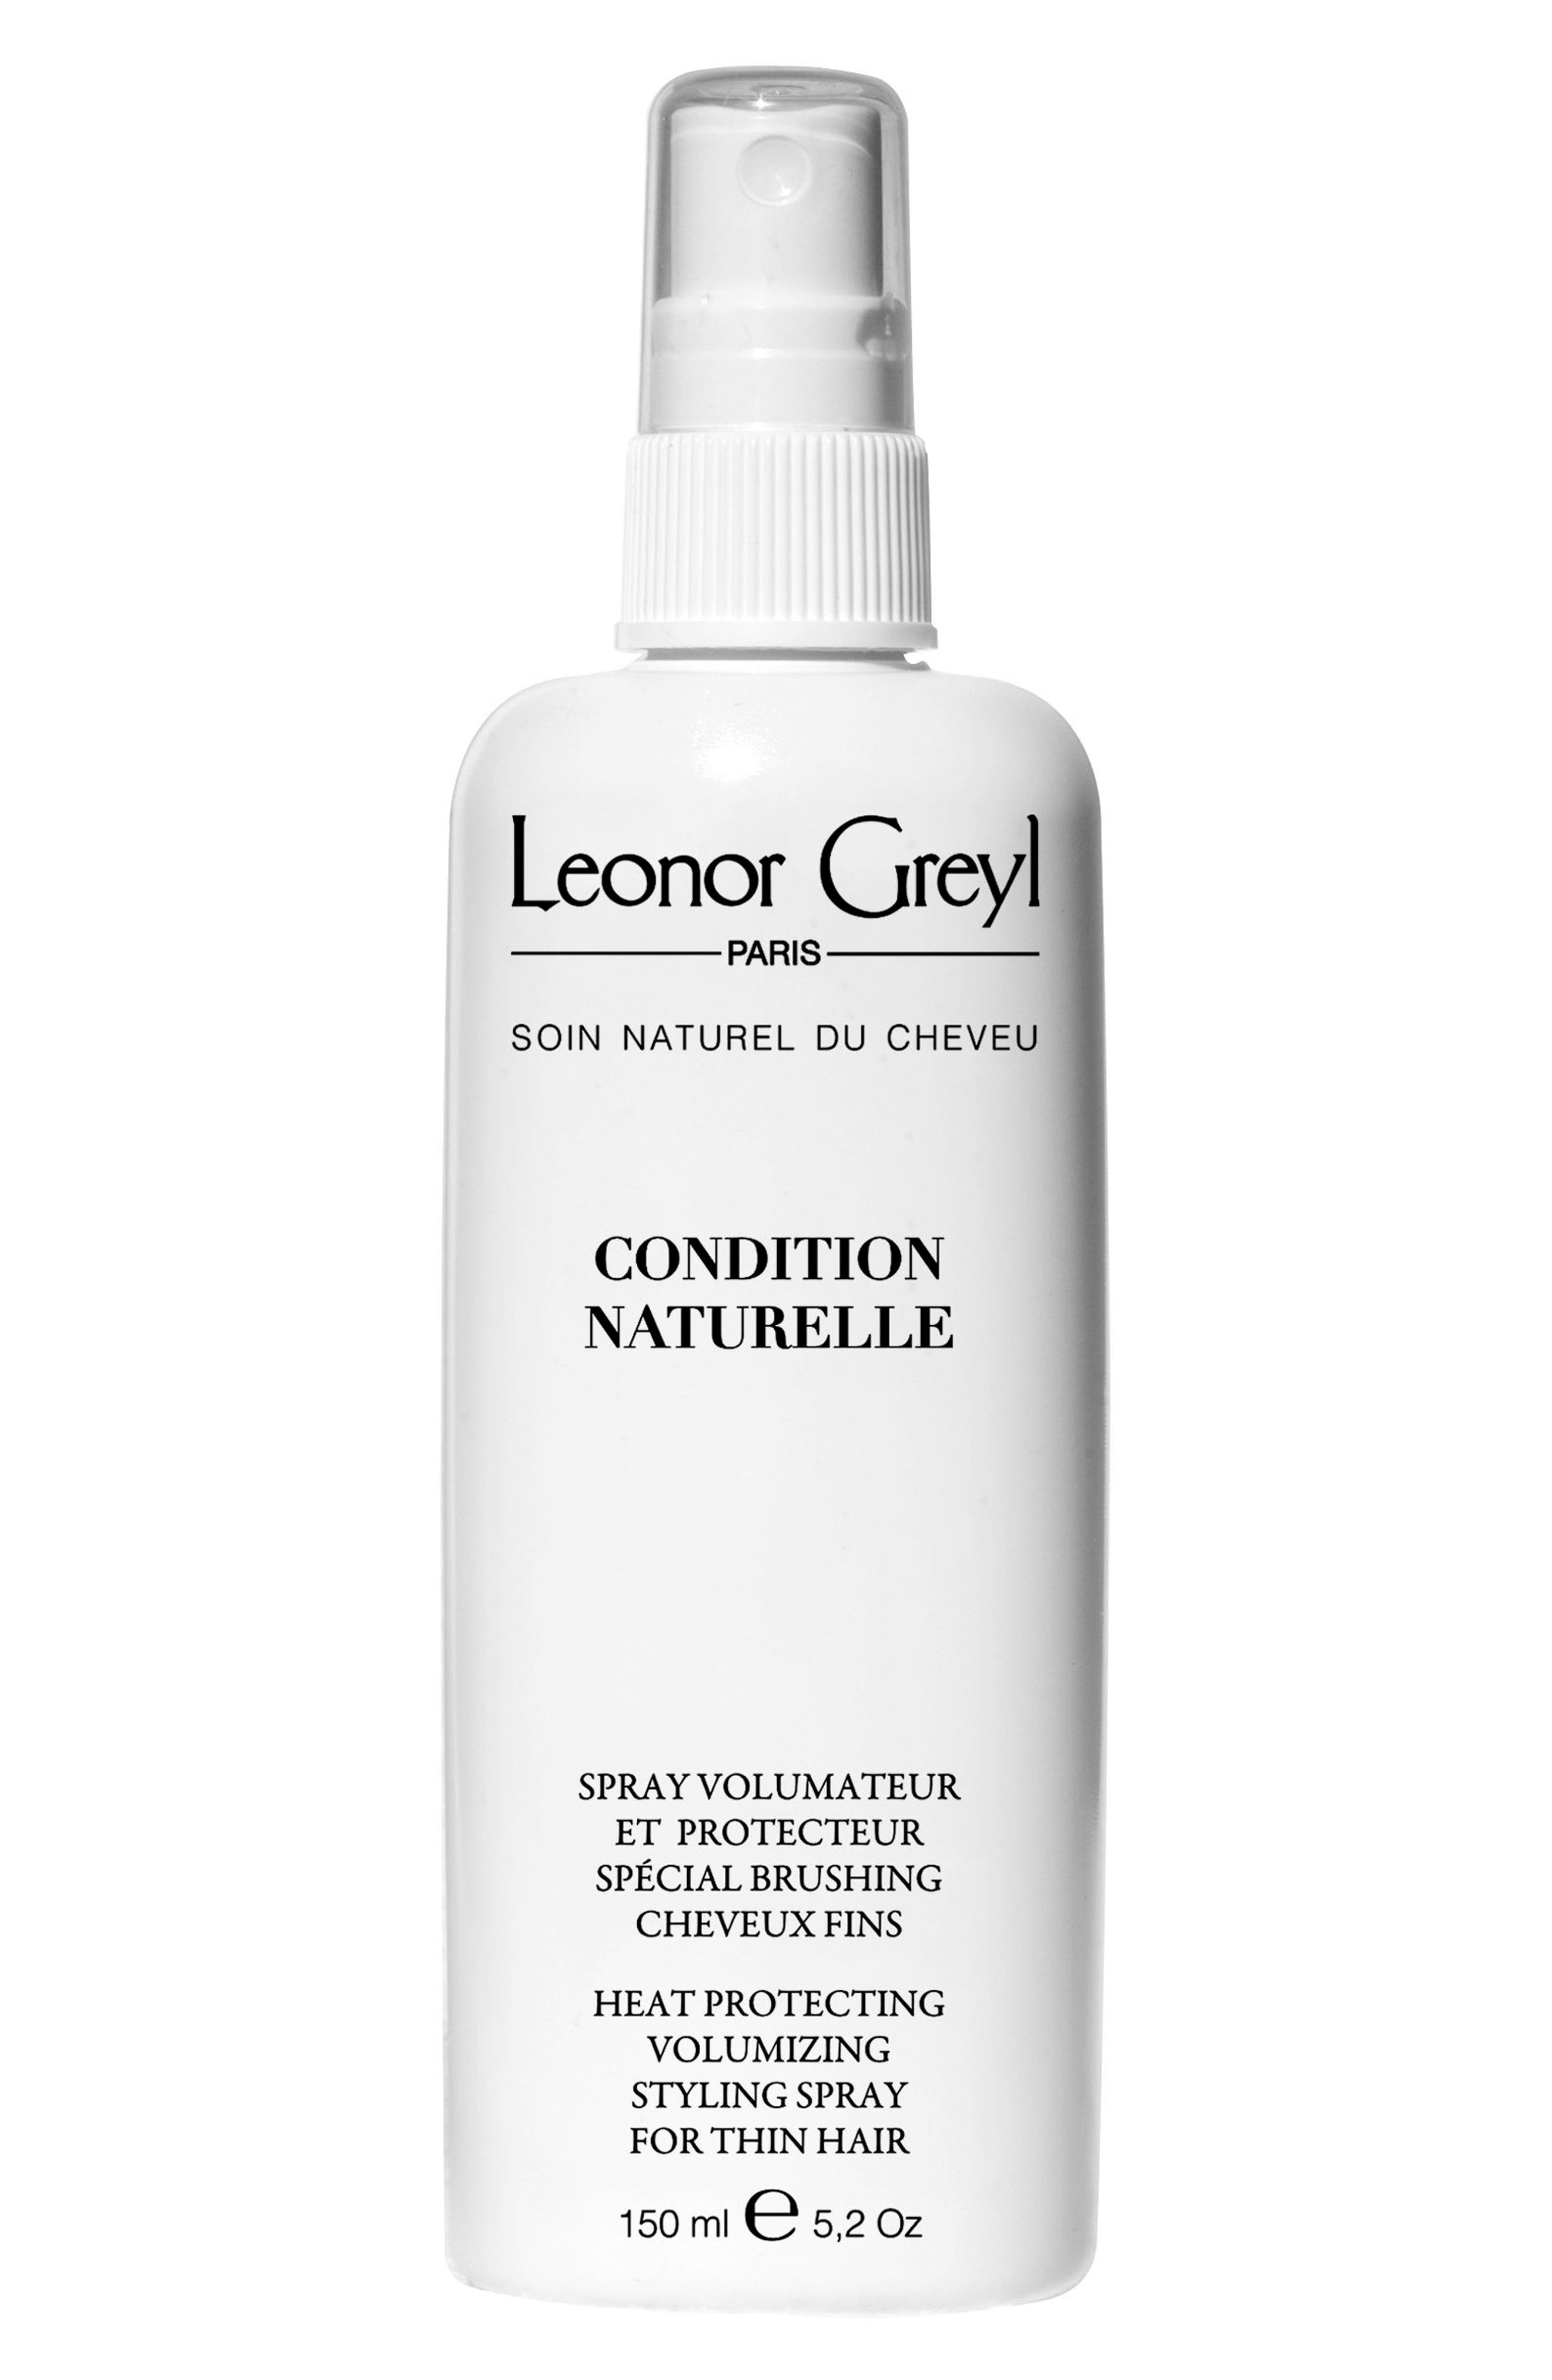 LEONOR GREYL PARIS Condition Naturelle Heat Protective Styling Spray for Thin Hair, Main, color, NO COLOR